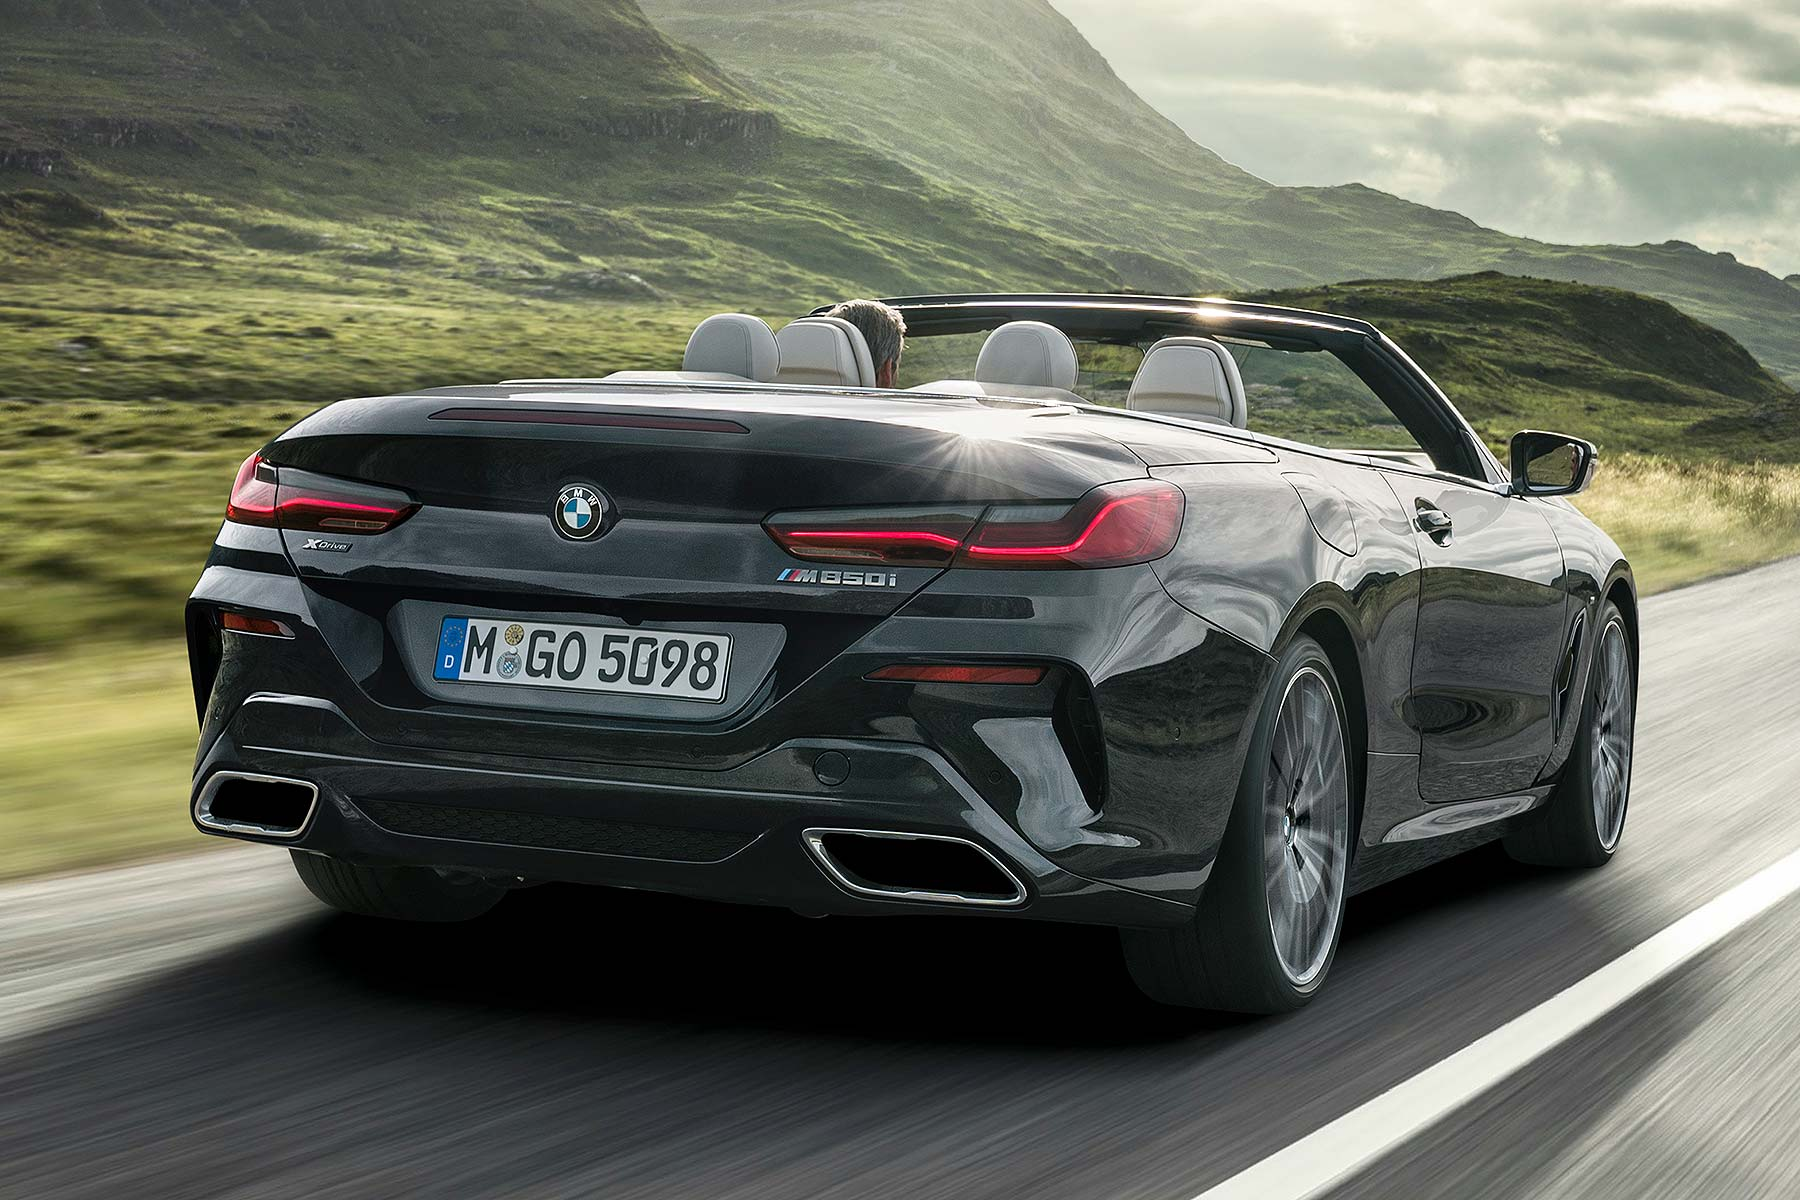 2019 Bmw M850i Xdrive Convertible Motoring Research